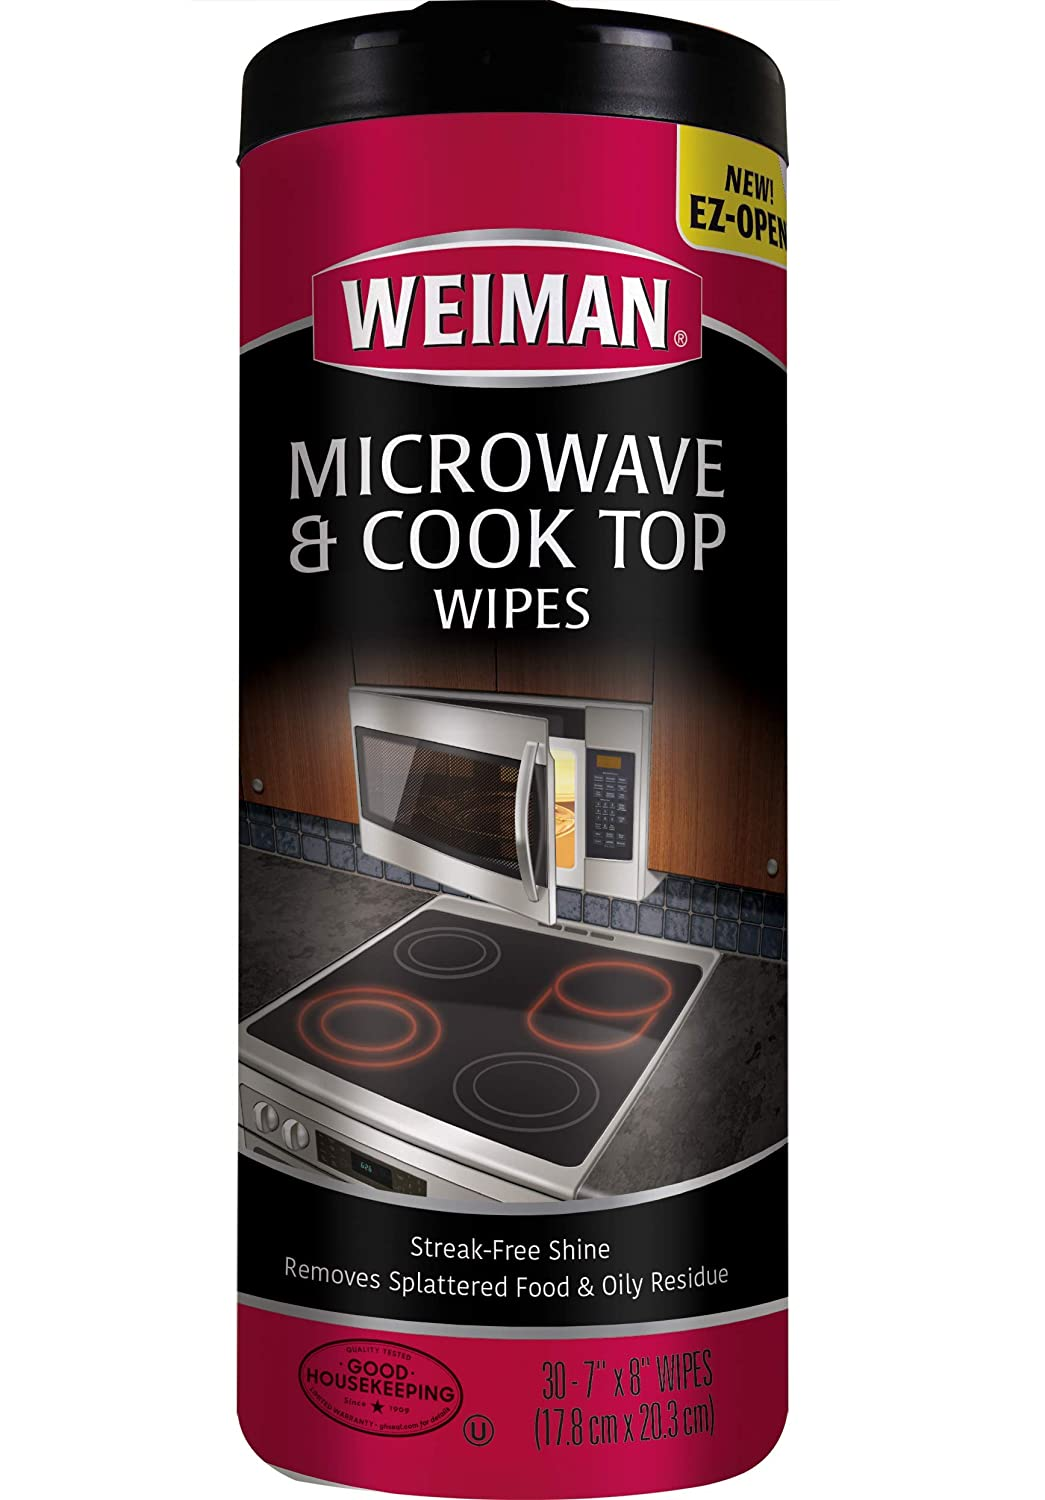 Weiman Cooktop & Microwave Cleaning Wipes - 30 Count